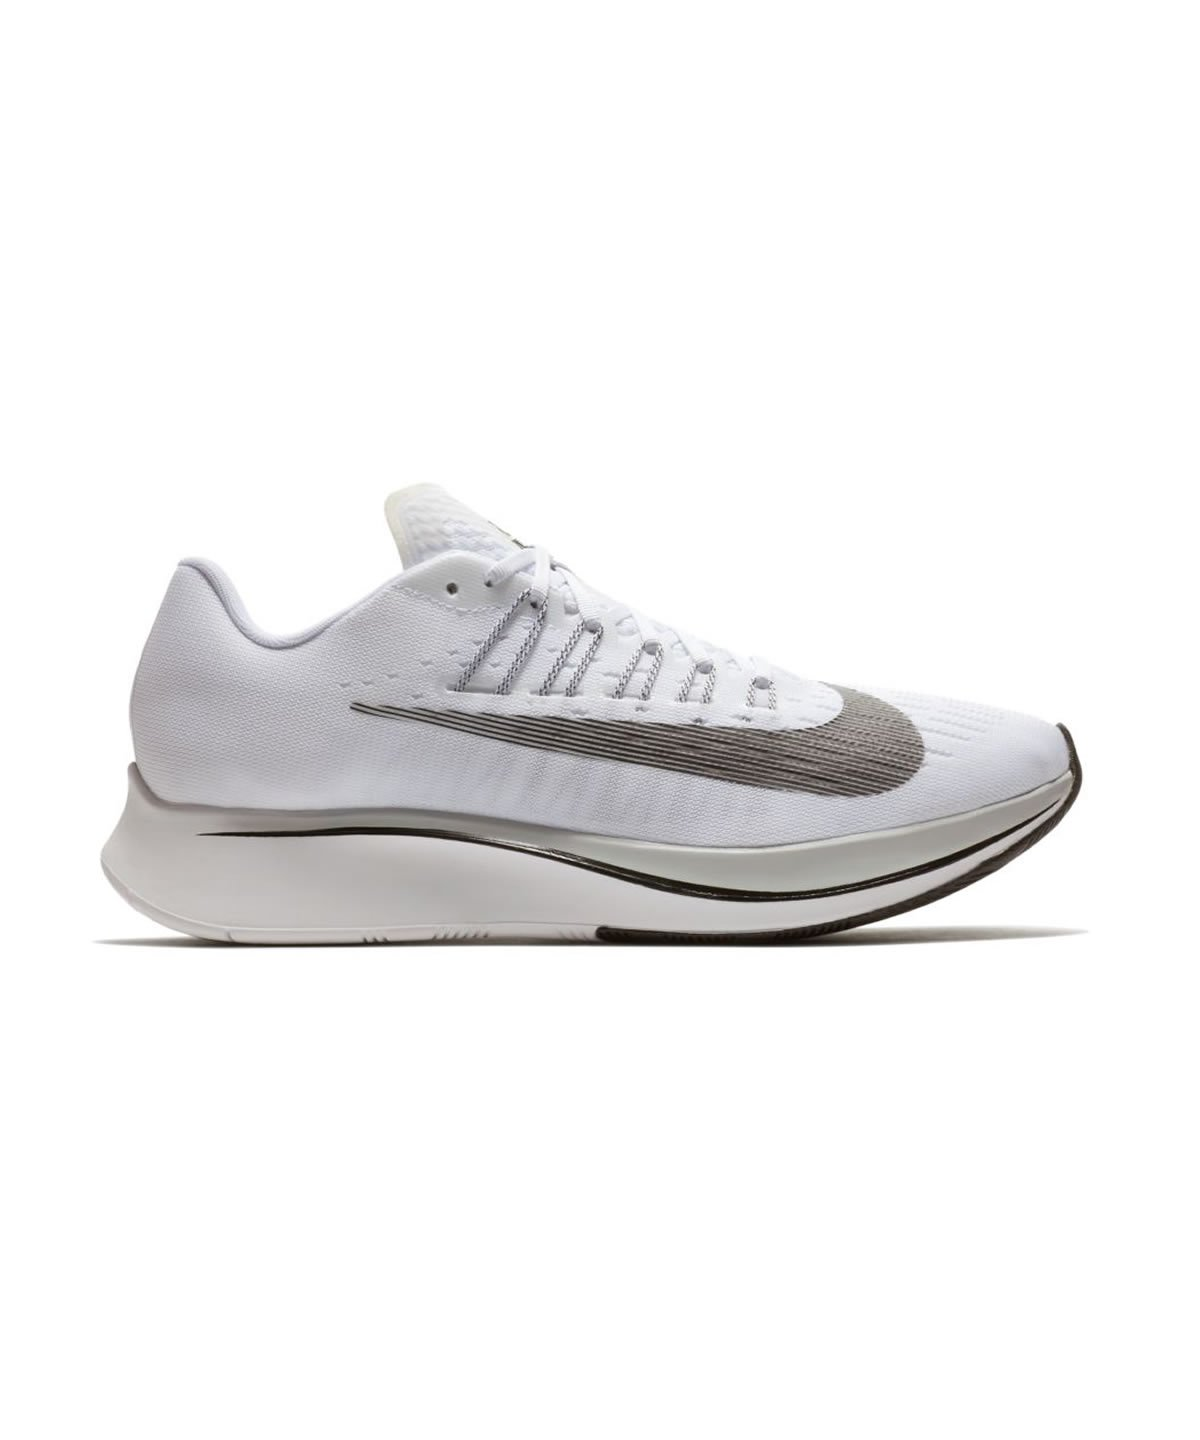 buy popular 6c763 86158 Galleon - Nike Zoom Fly Mens 880848-101 Size 7